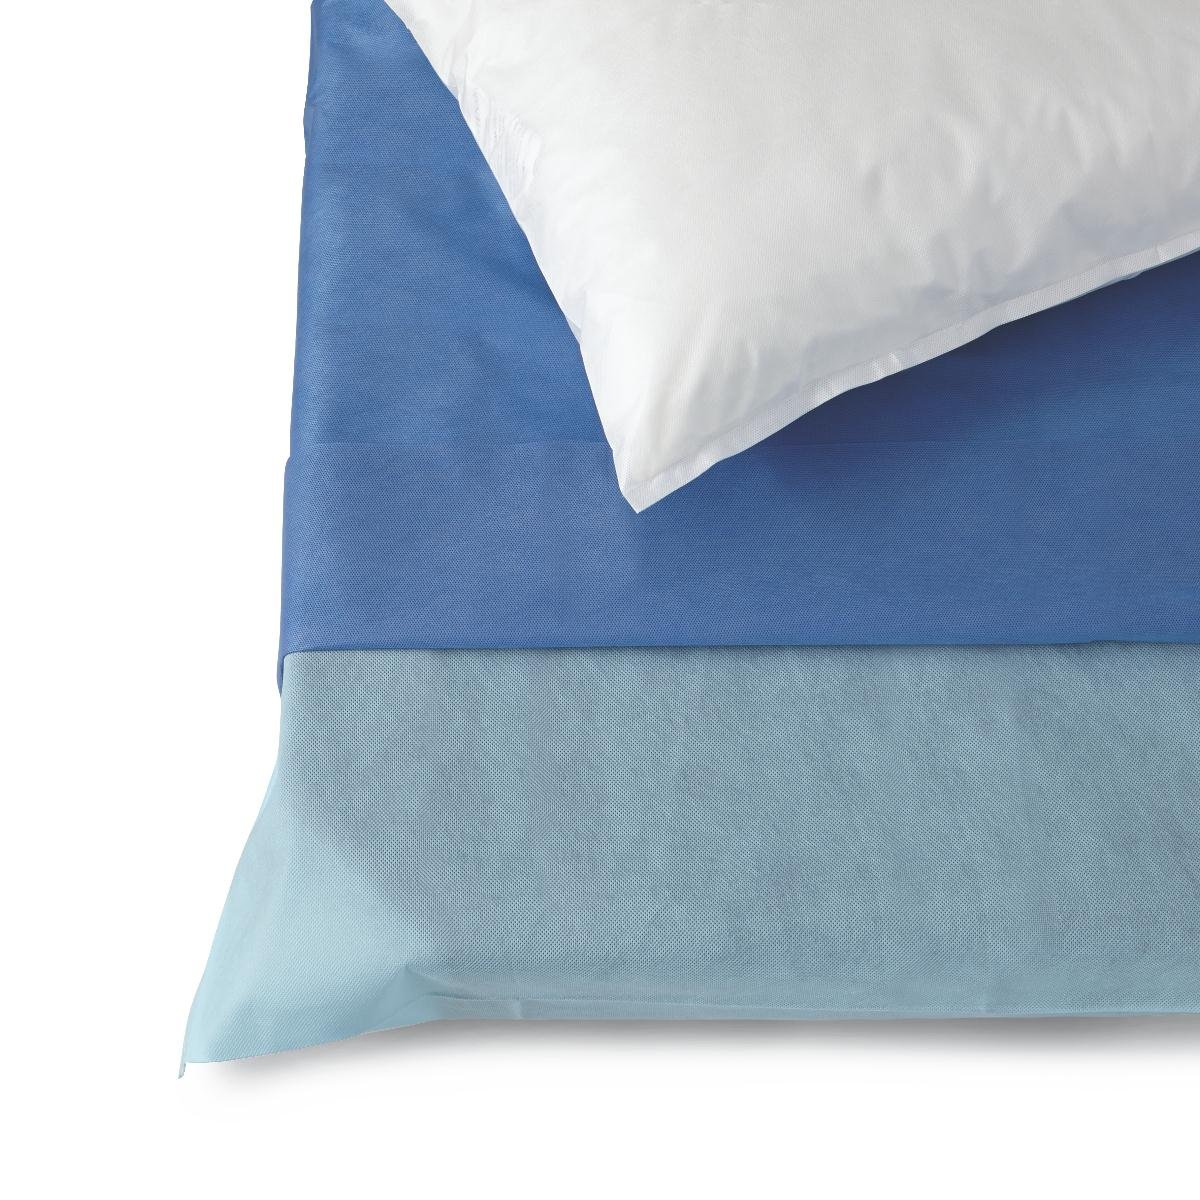 Medline NON37250 Multi-Layer Stretcher Sheet Sets, Blue (Pack of 24)